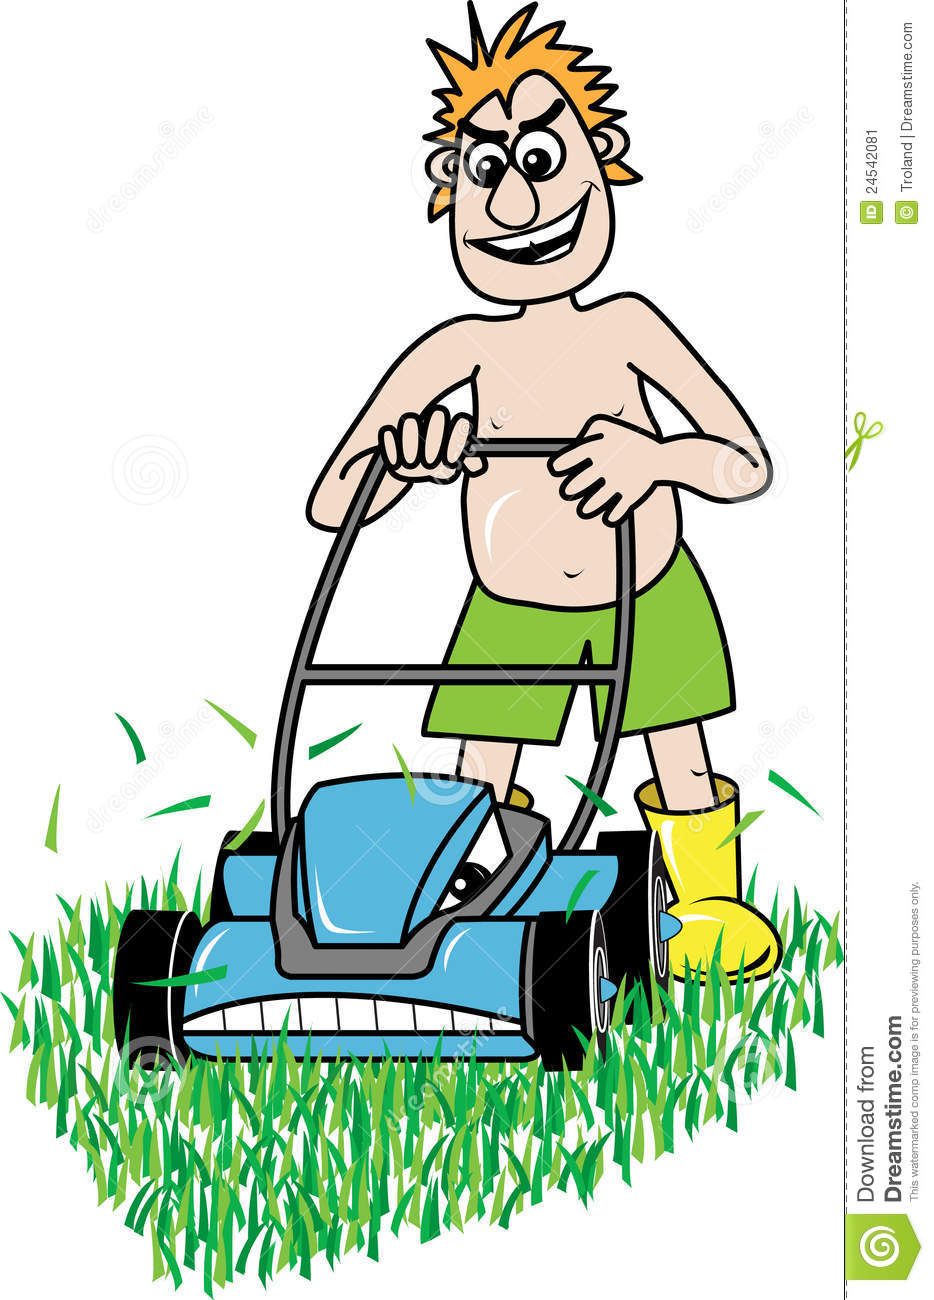 Lawn Mowing Stock Image - Image: 24542081